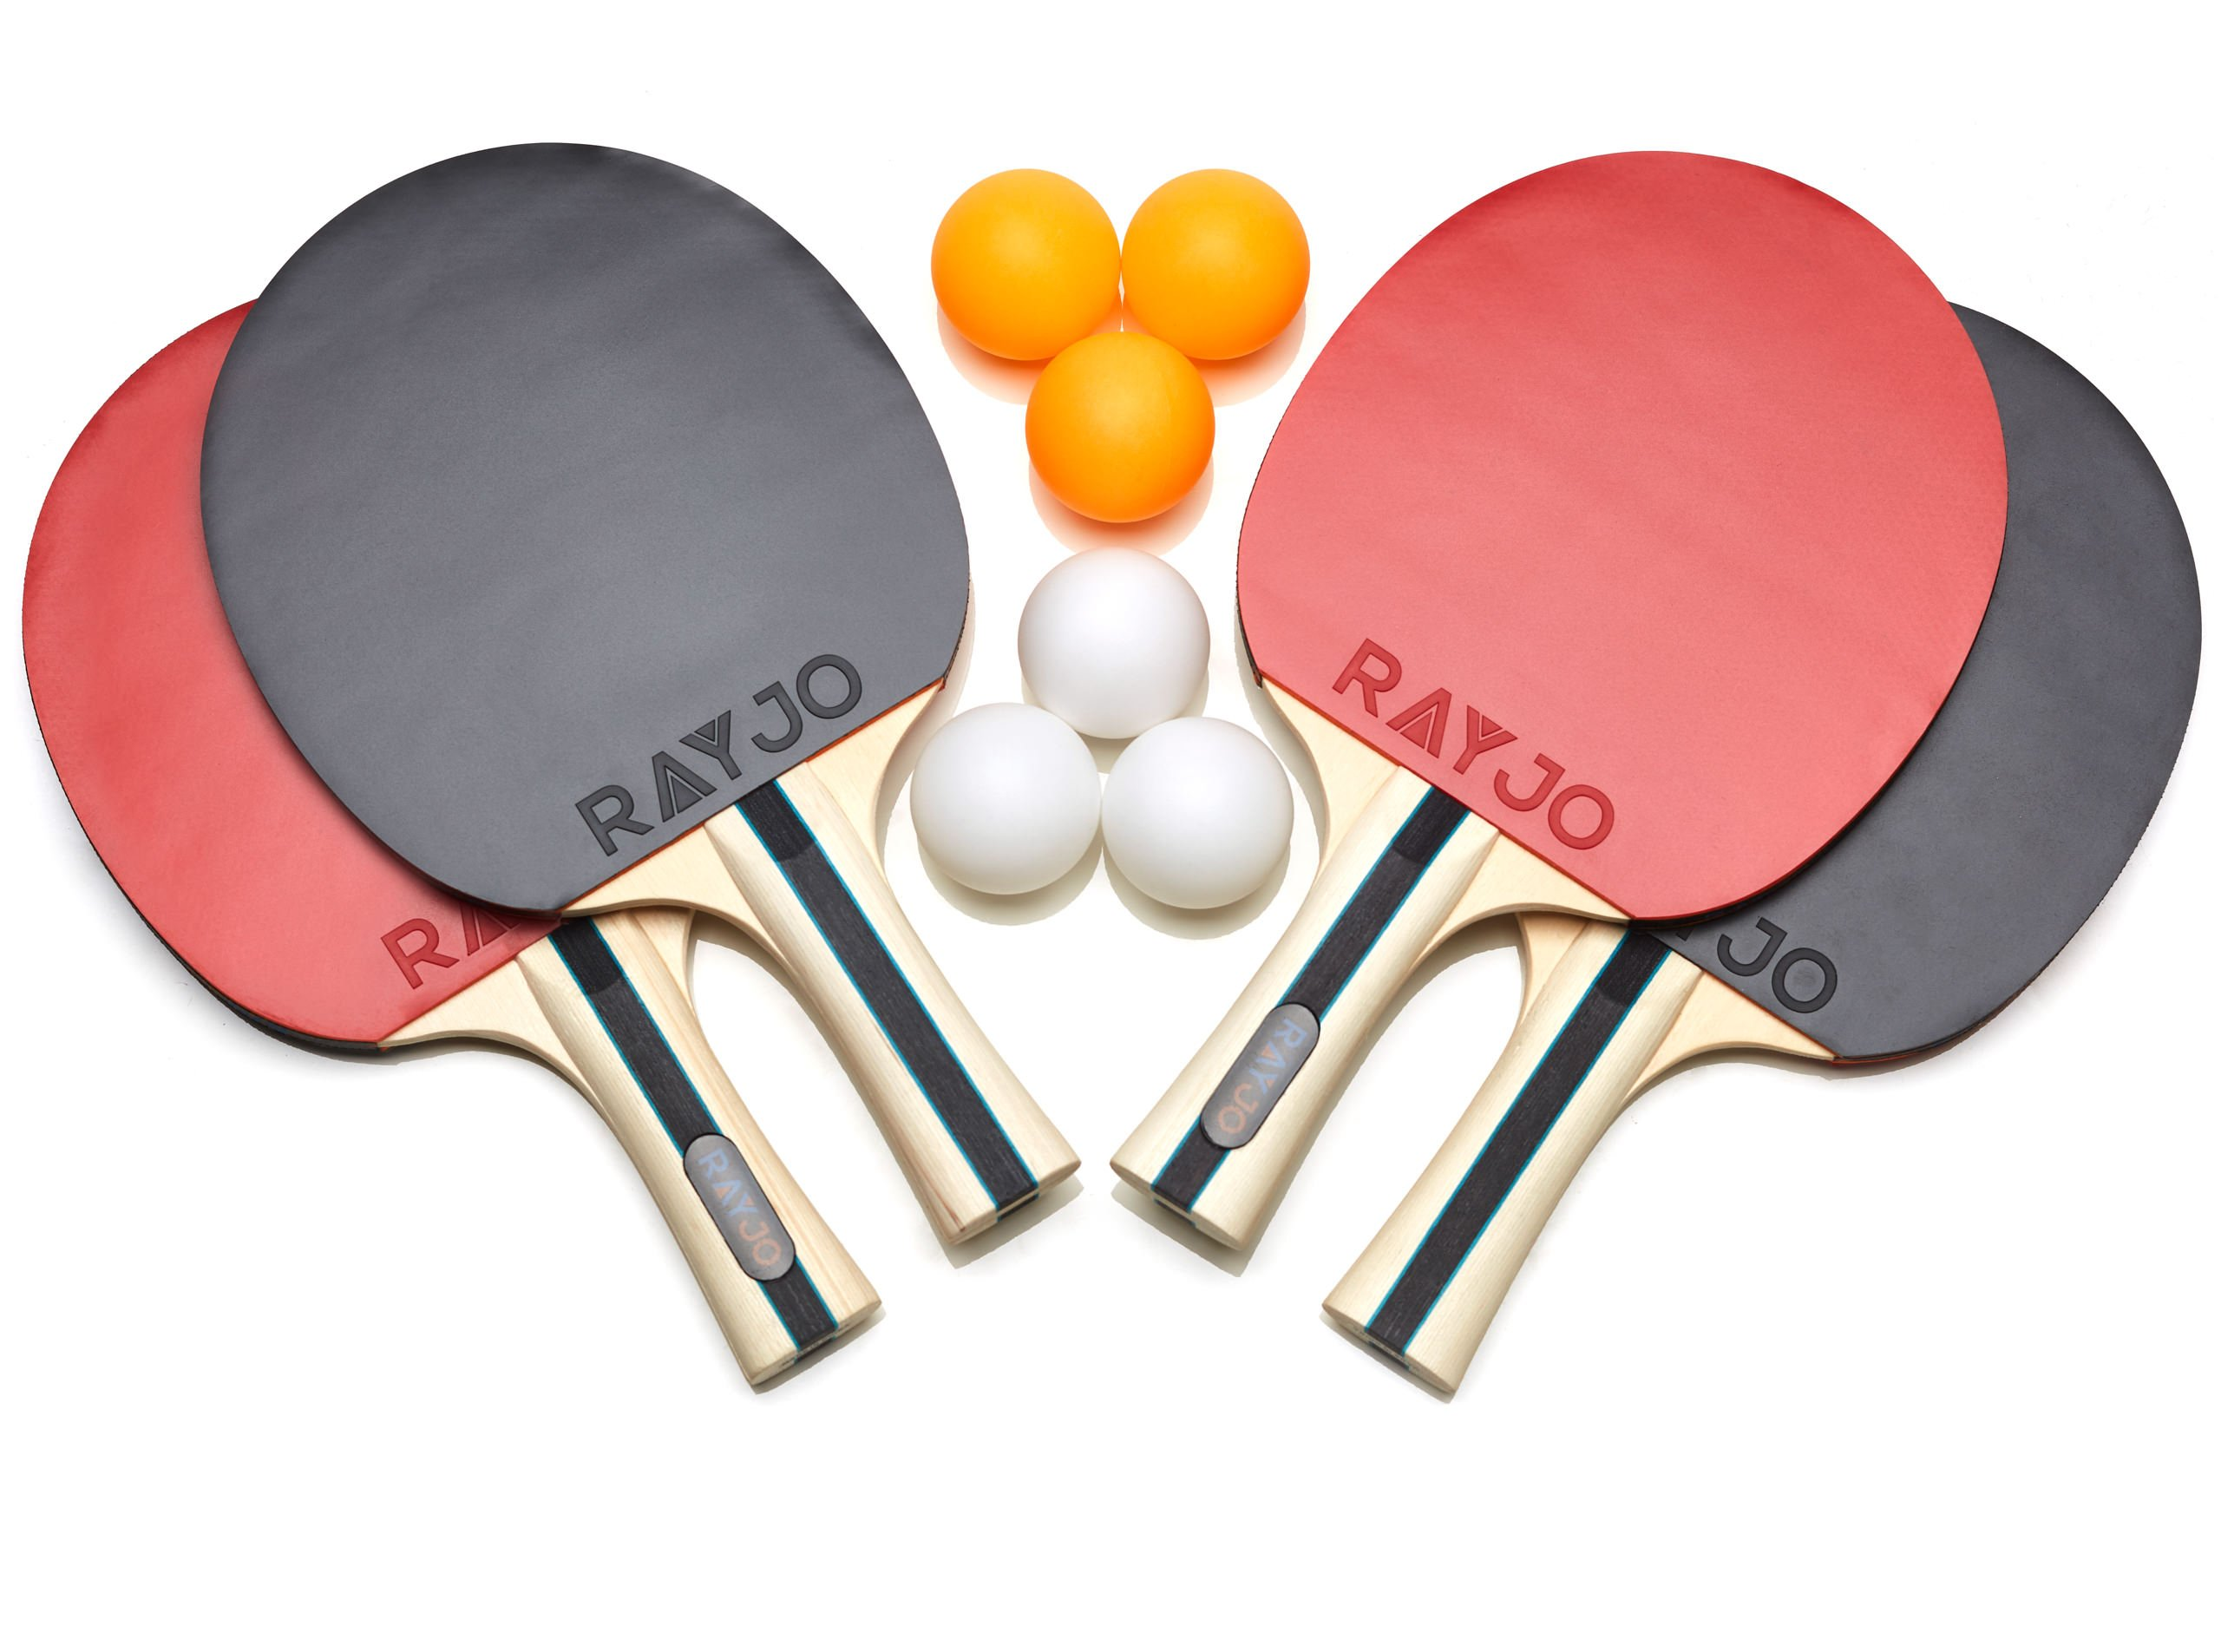 RAYJO Ping Pong Racket Set - Pack of 4 Table Tennis Paddle and 6 Table Tennis Balls - Ideal for Tournament and Recreational Games